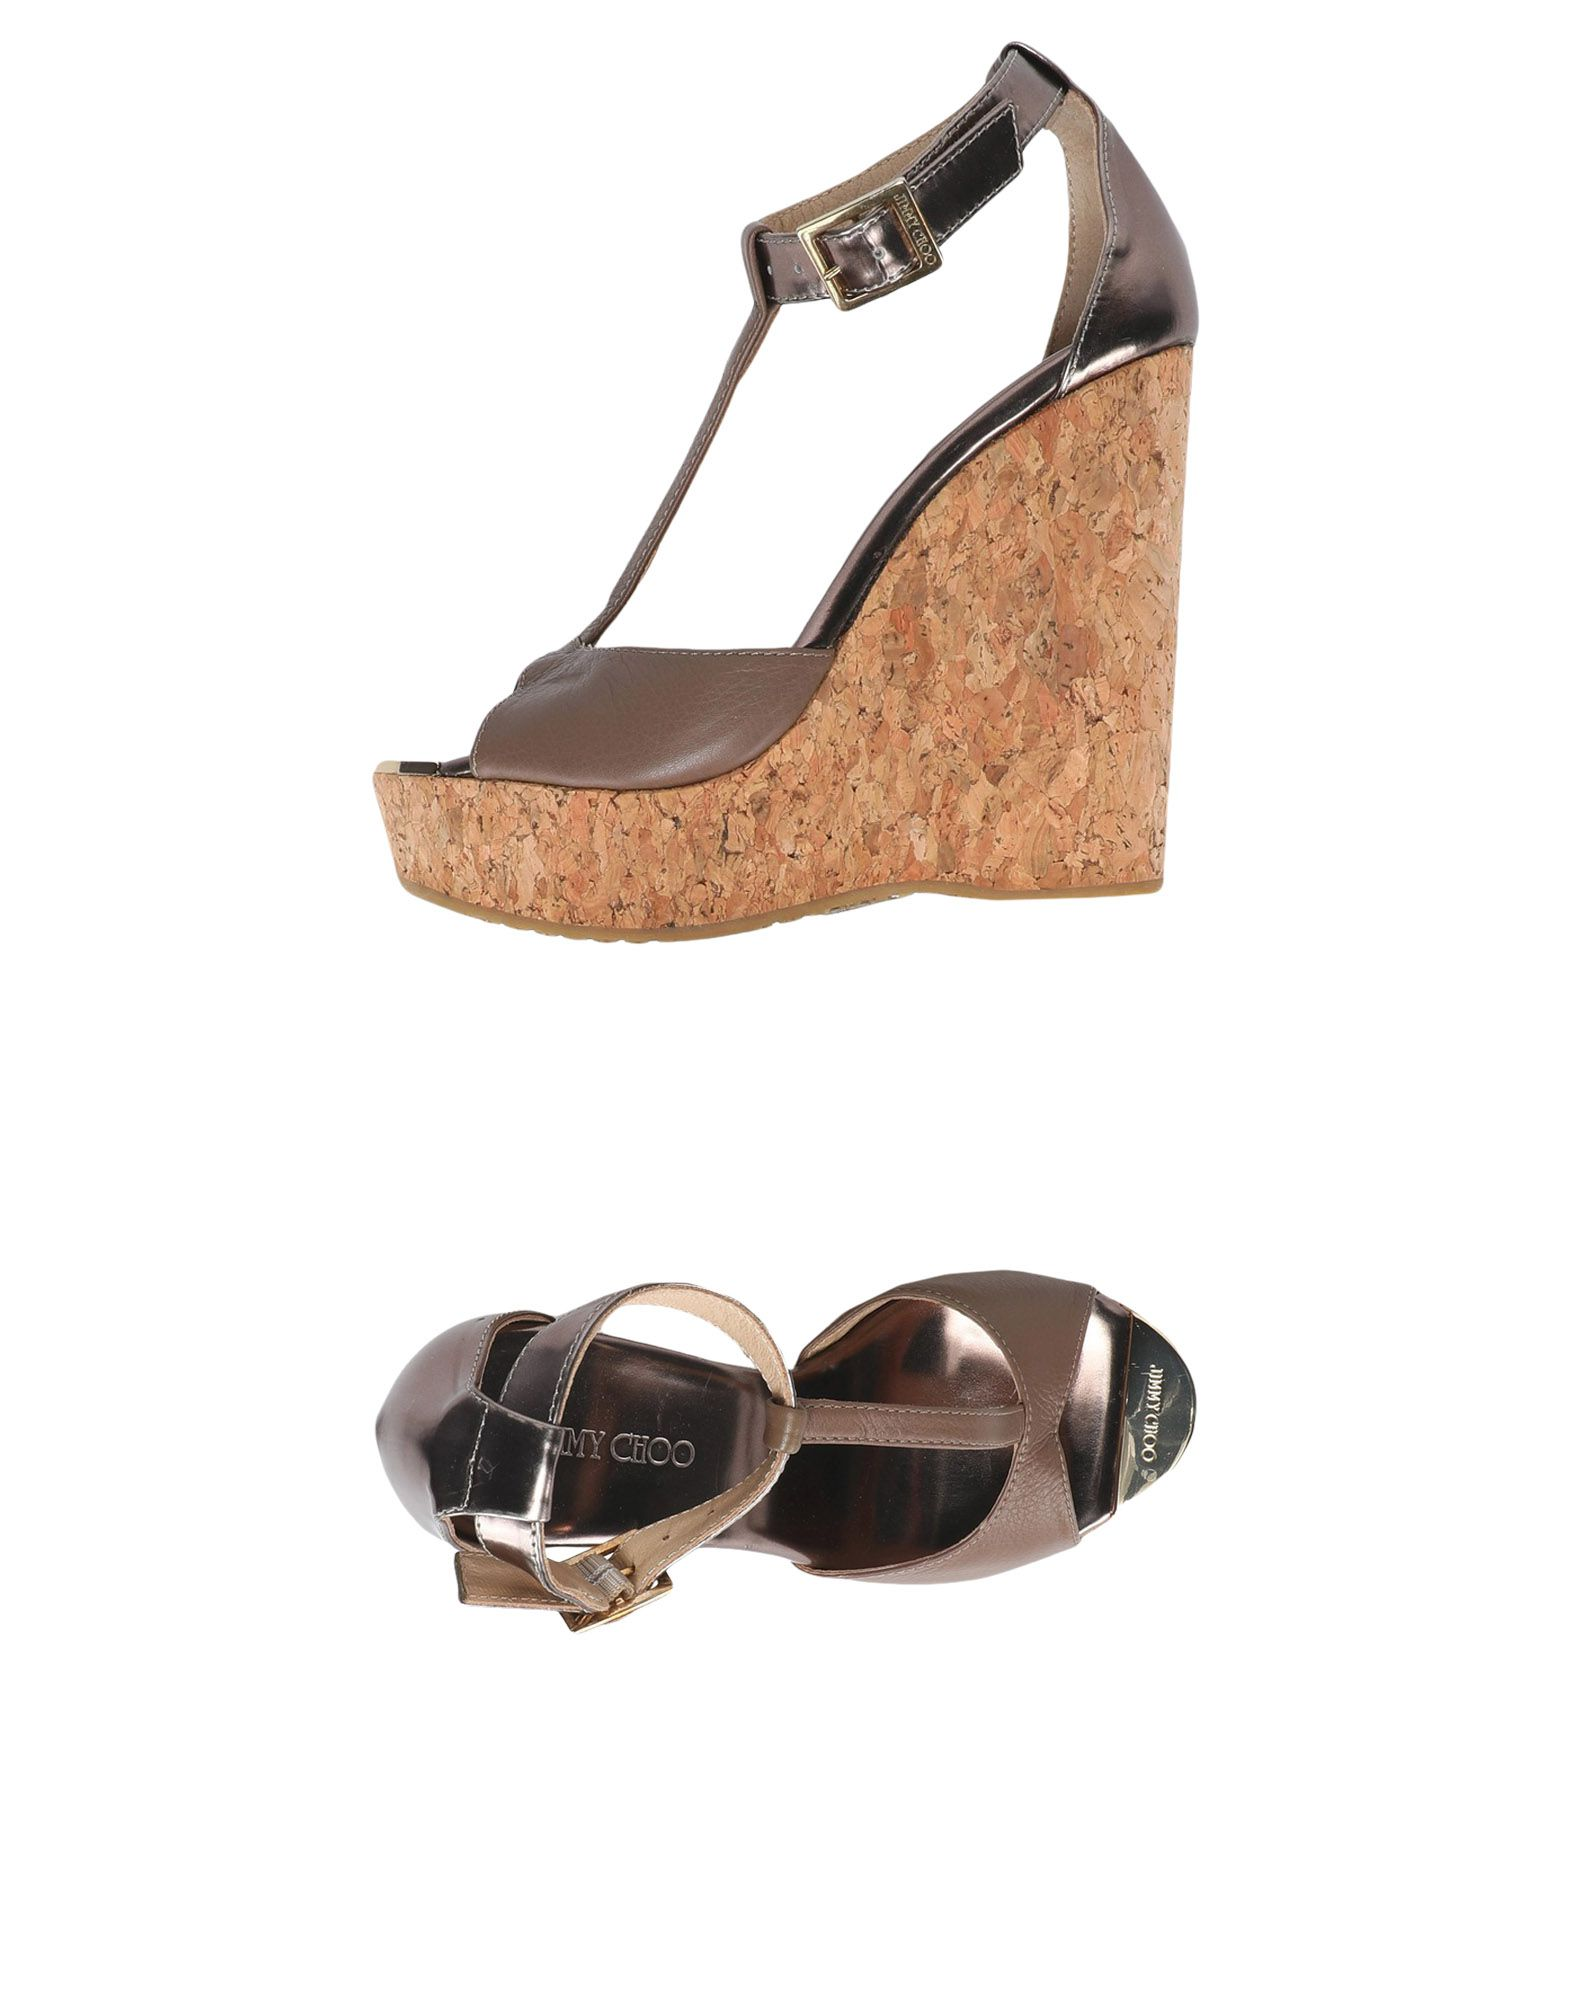 Jimmy Choo Sandals - Women Jimmy Choo Sandals online 11478541NG on  Canada - 11478541NG online 69ee93